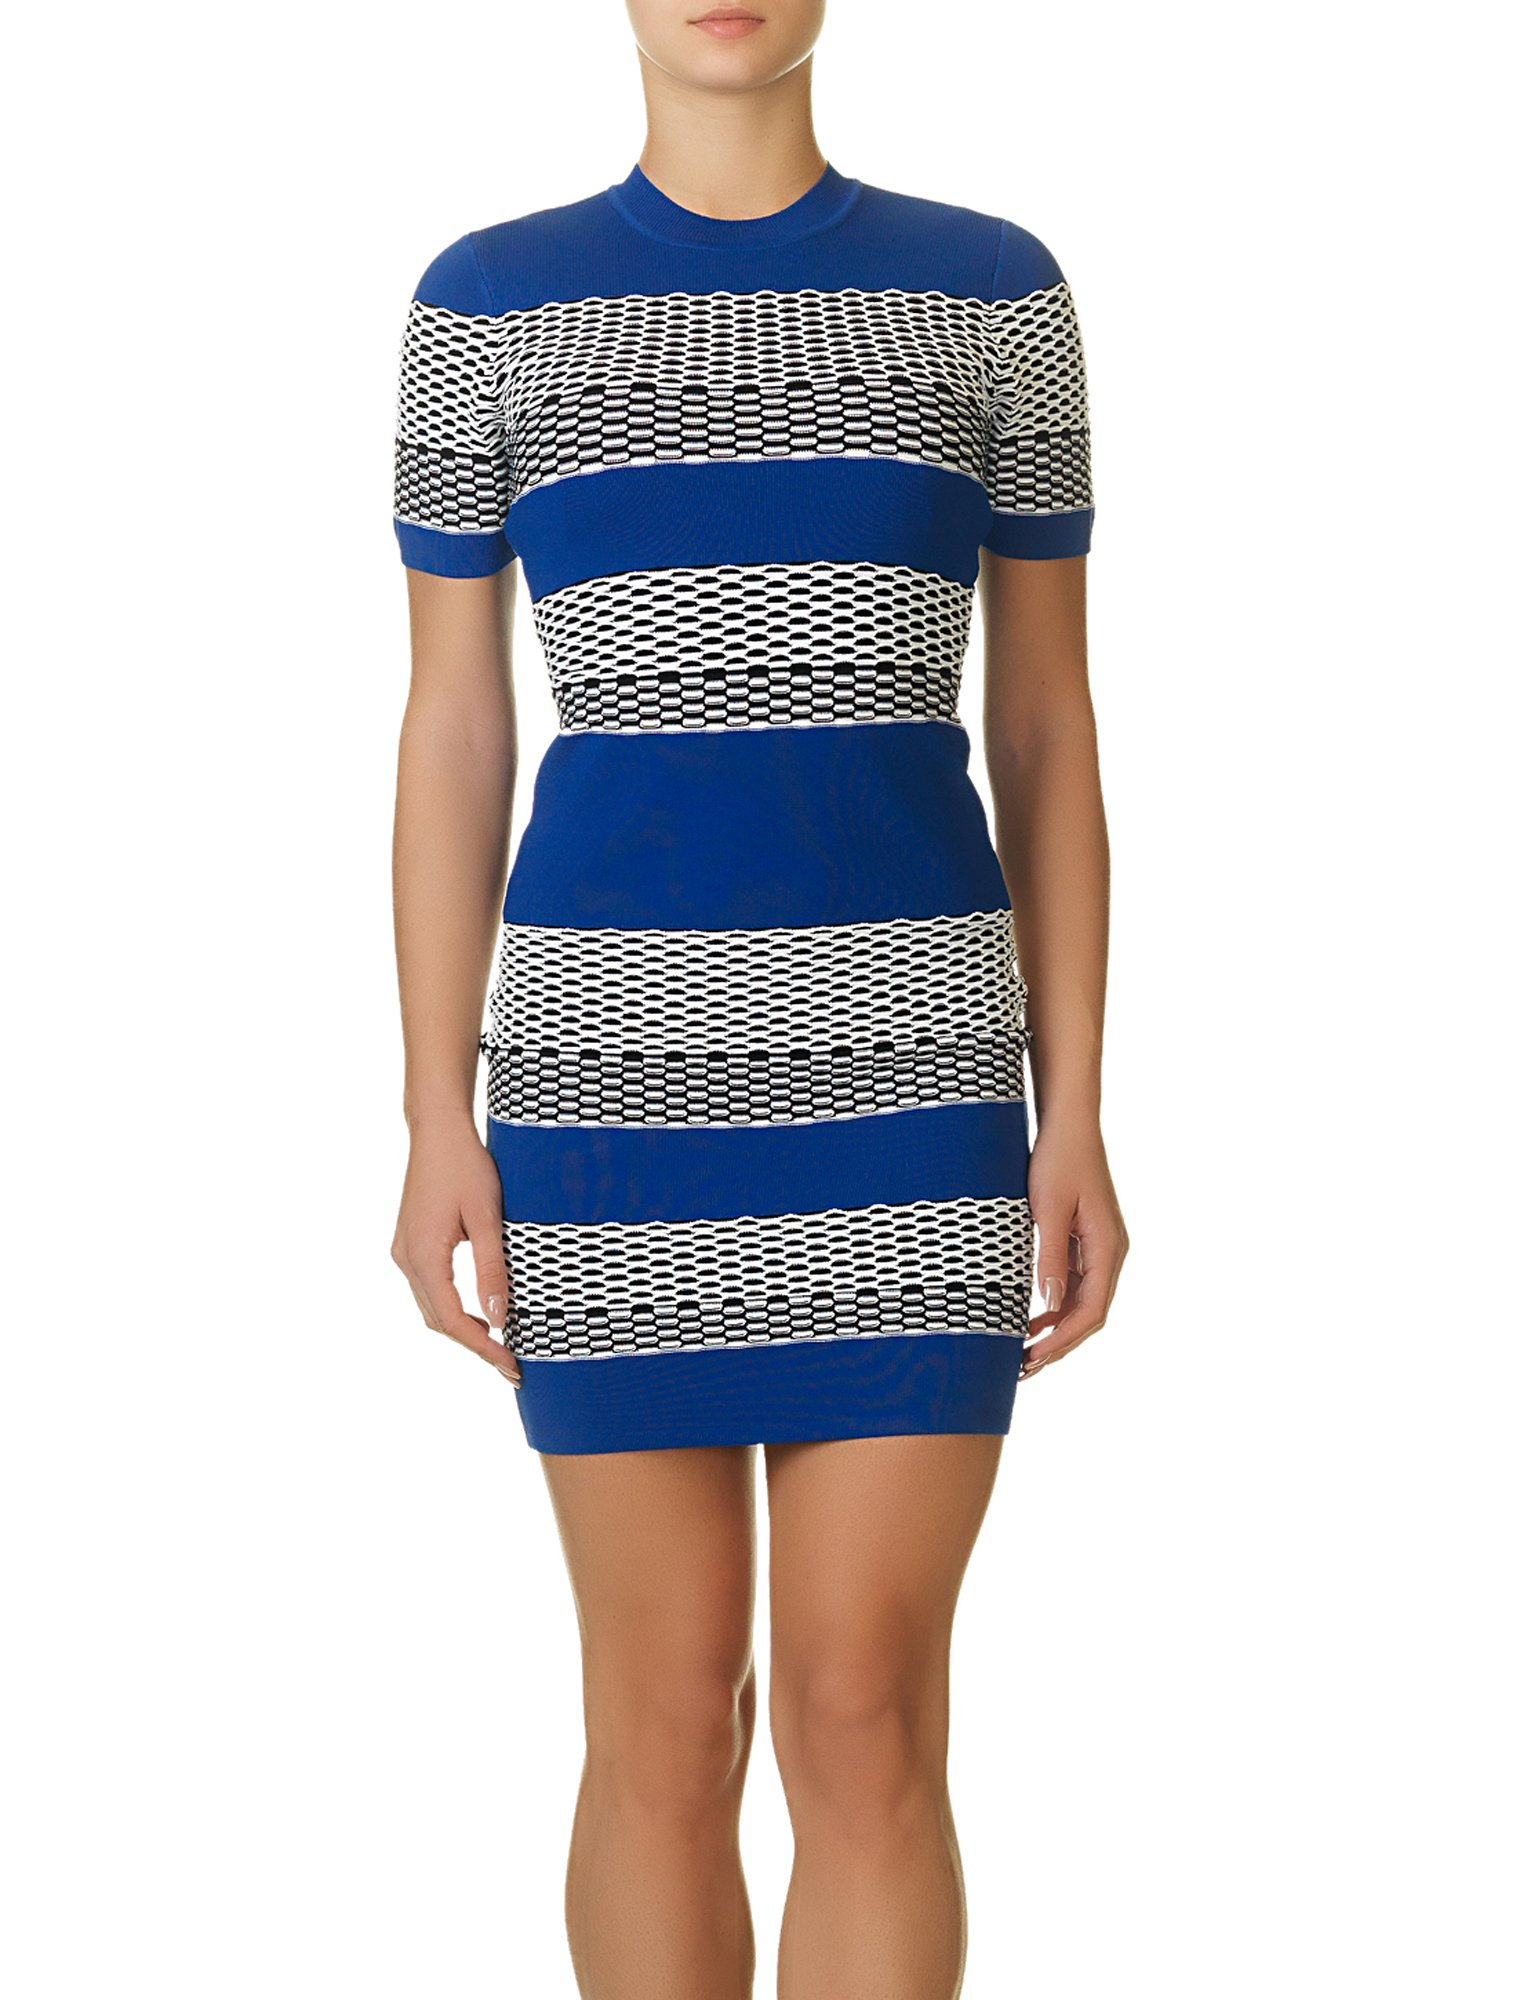 Kendall + Kylie Womens Patterned Stripes Stretch Casual Dress Blue L